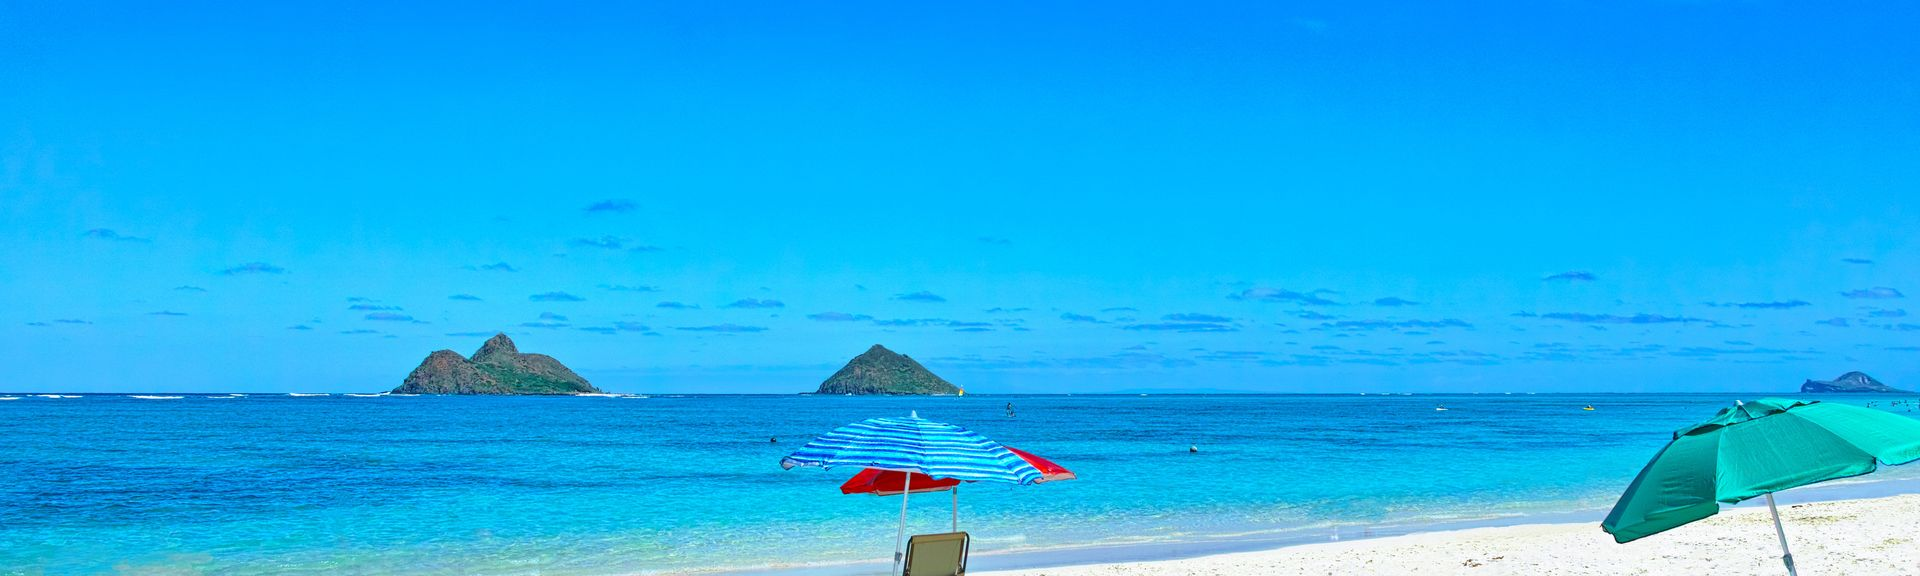 Lanikai, Kailua, Hawaii, United States of America